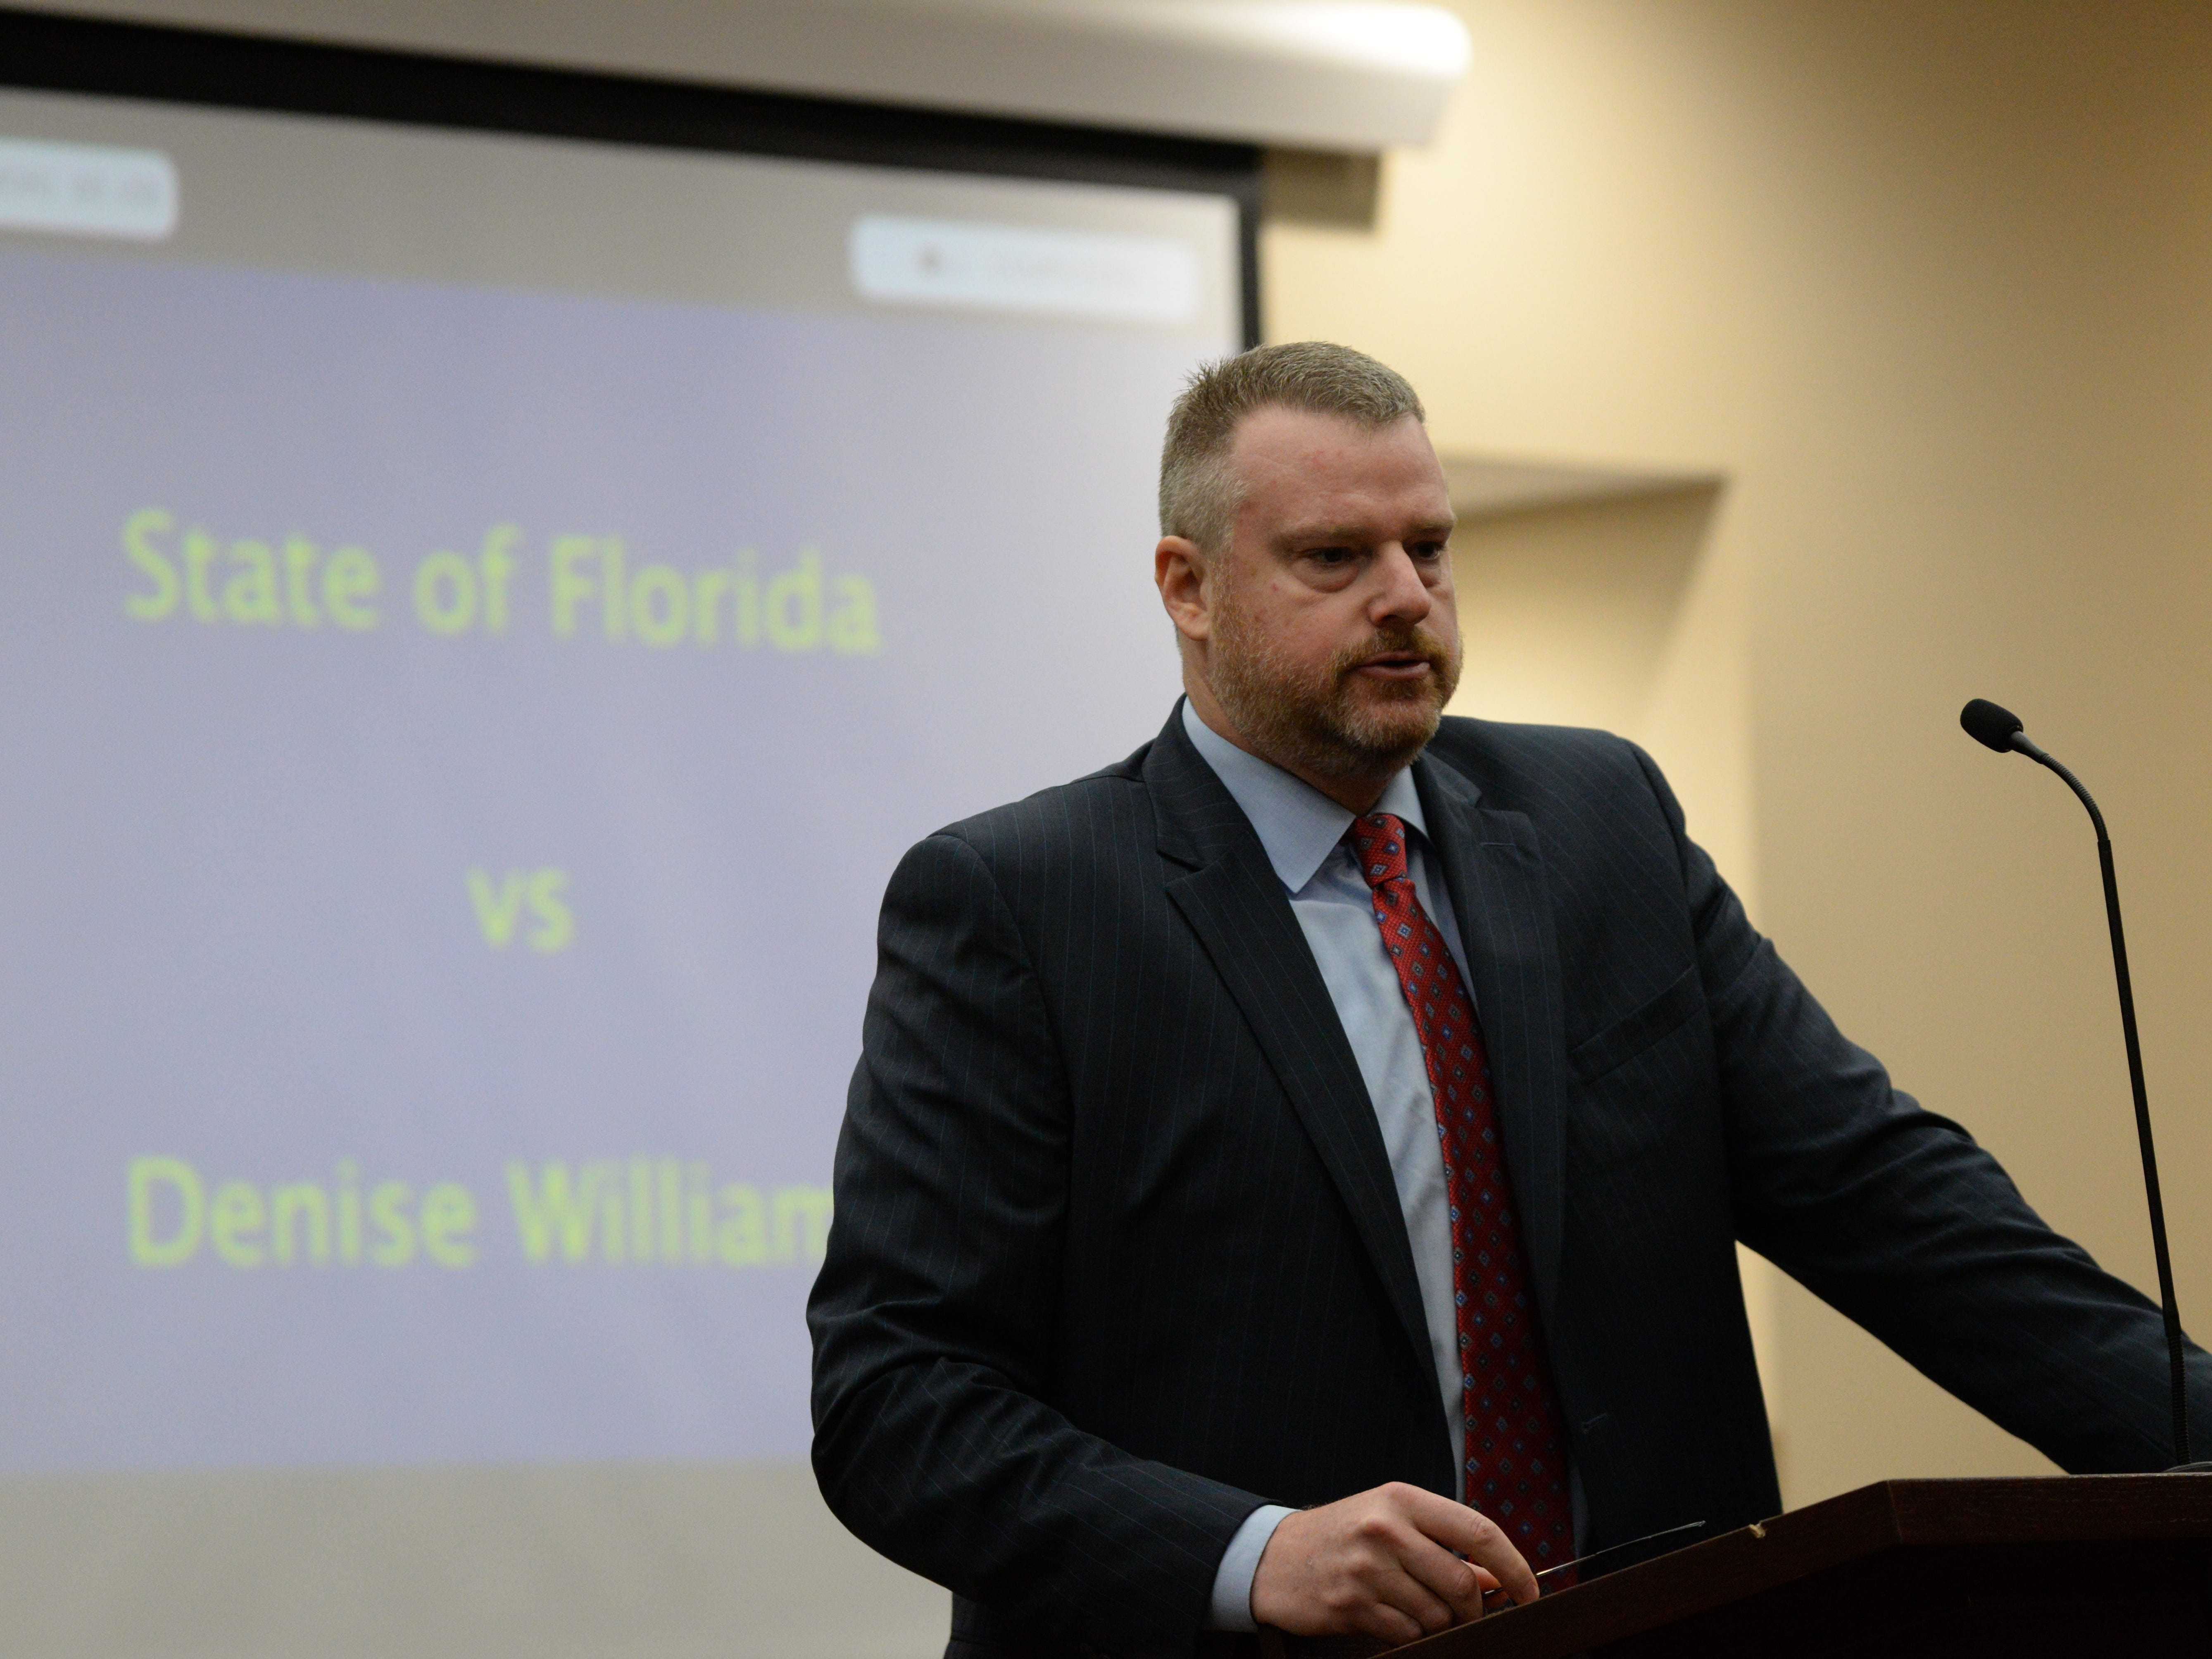 Assistant State Attorney Jon Fuchs begins his closing arguments during the trial of Denise Williams for the murder of her husband Mike Williams at the Leon County Courthouse Friday, Dec. 14, 2018.